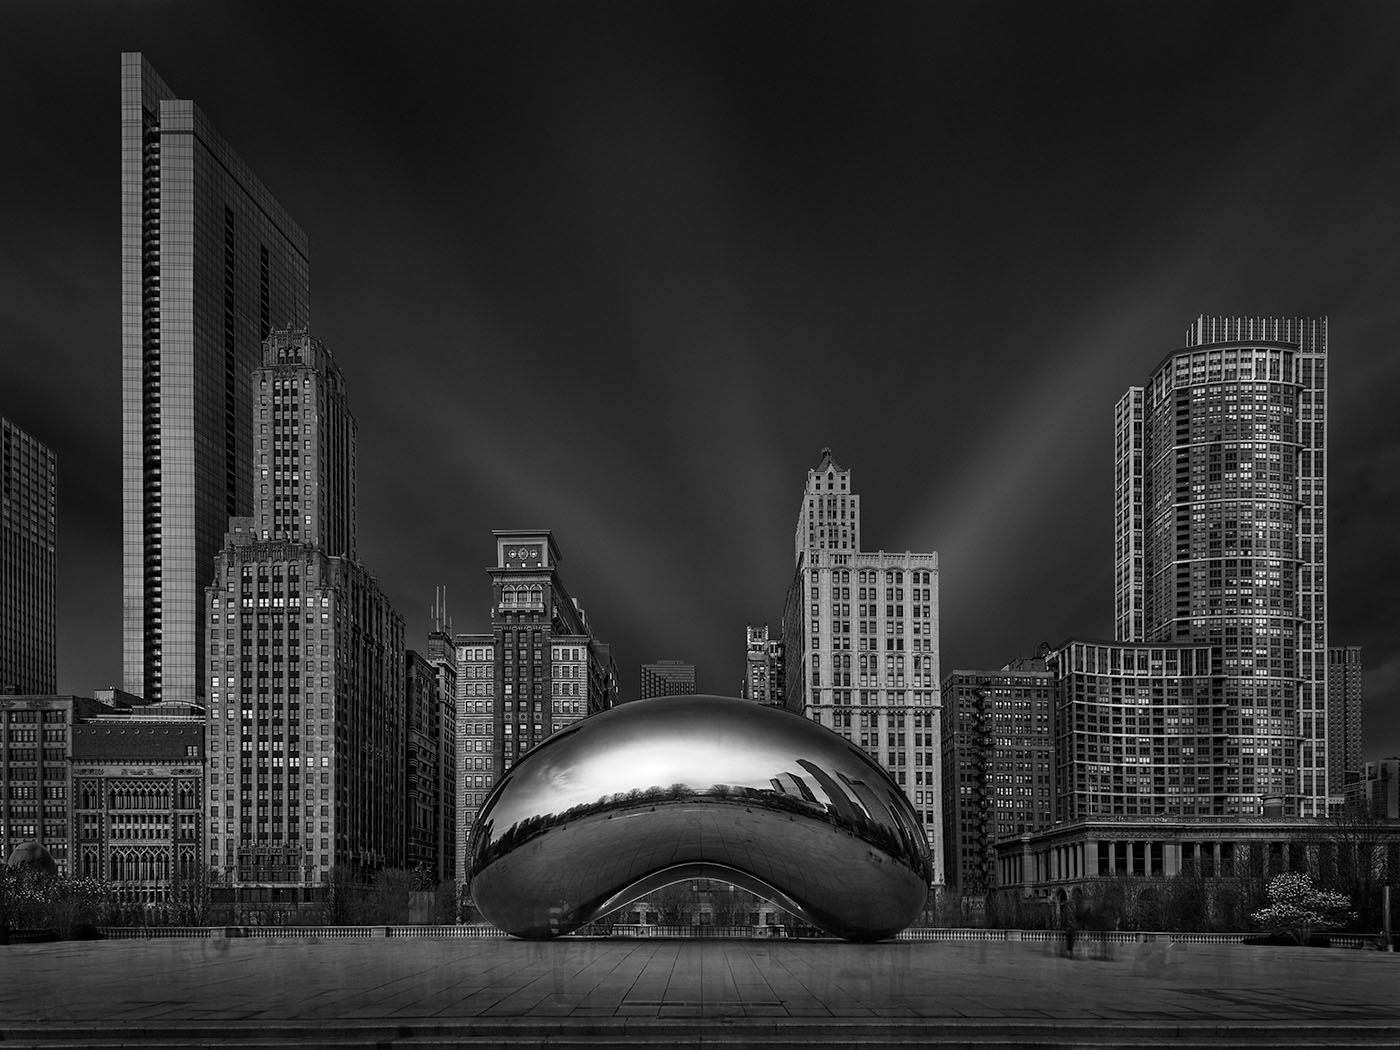 Julia Anna Gospodarou_Cloud Echo I - Cloud Gate Chicago - long exposure photography in an urban environment